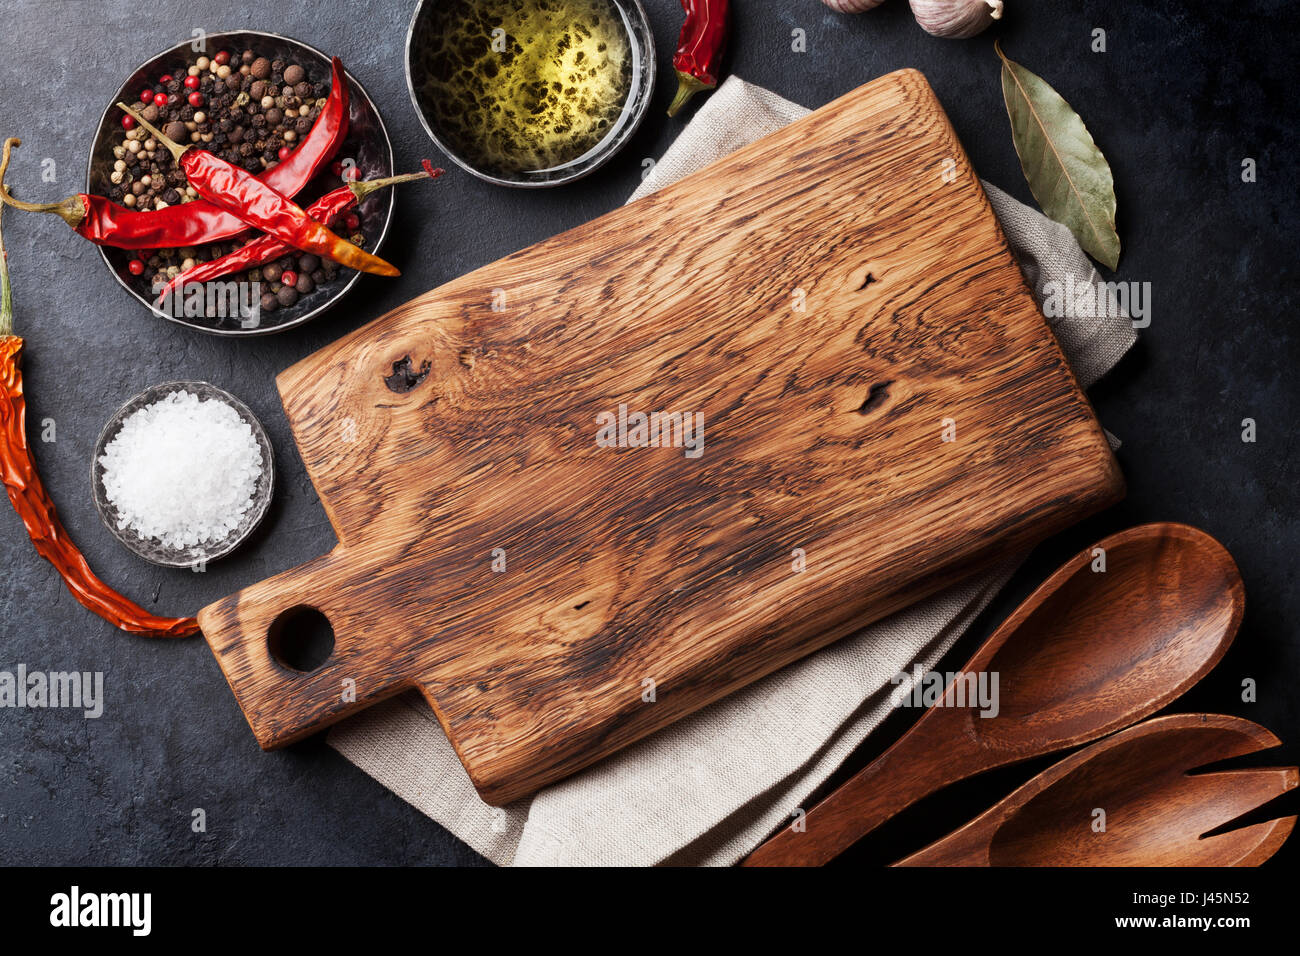 Cooking ingredients and utensils on stone table. Top view - Stock Image